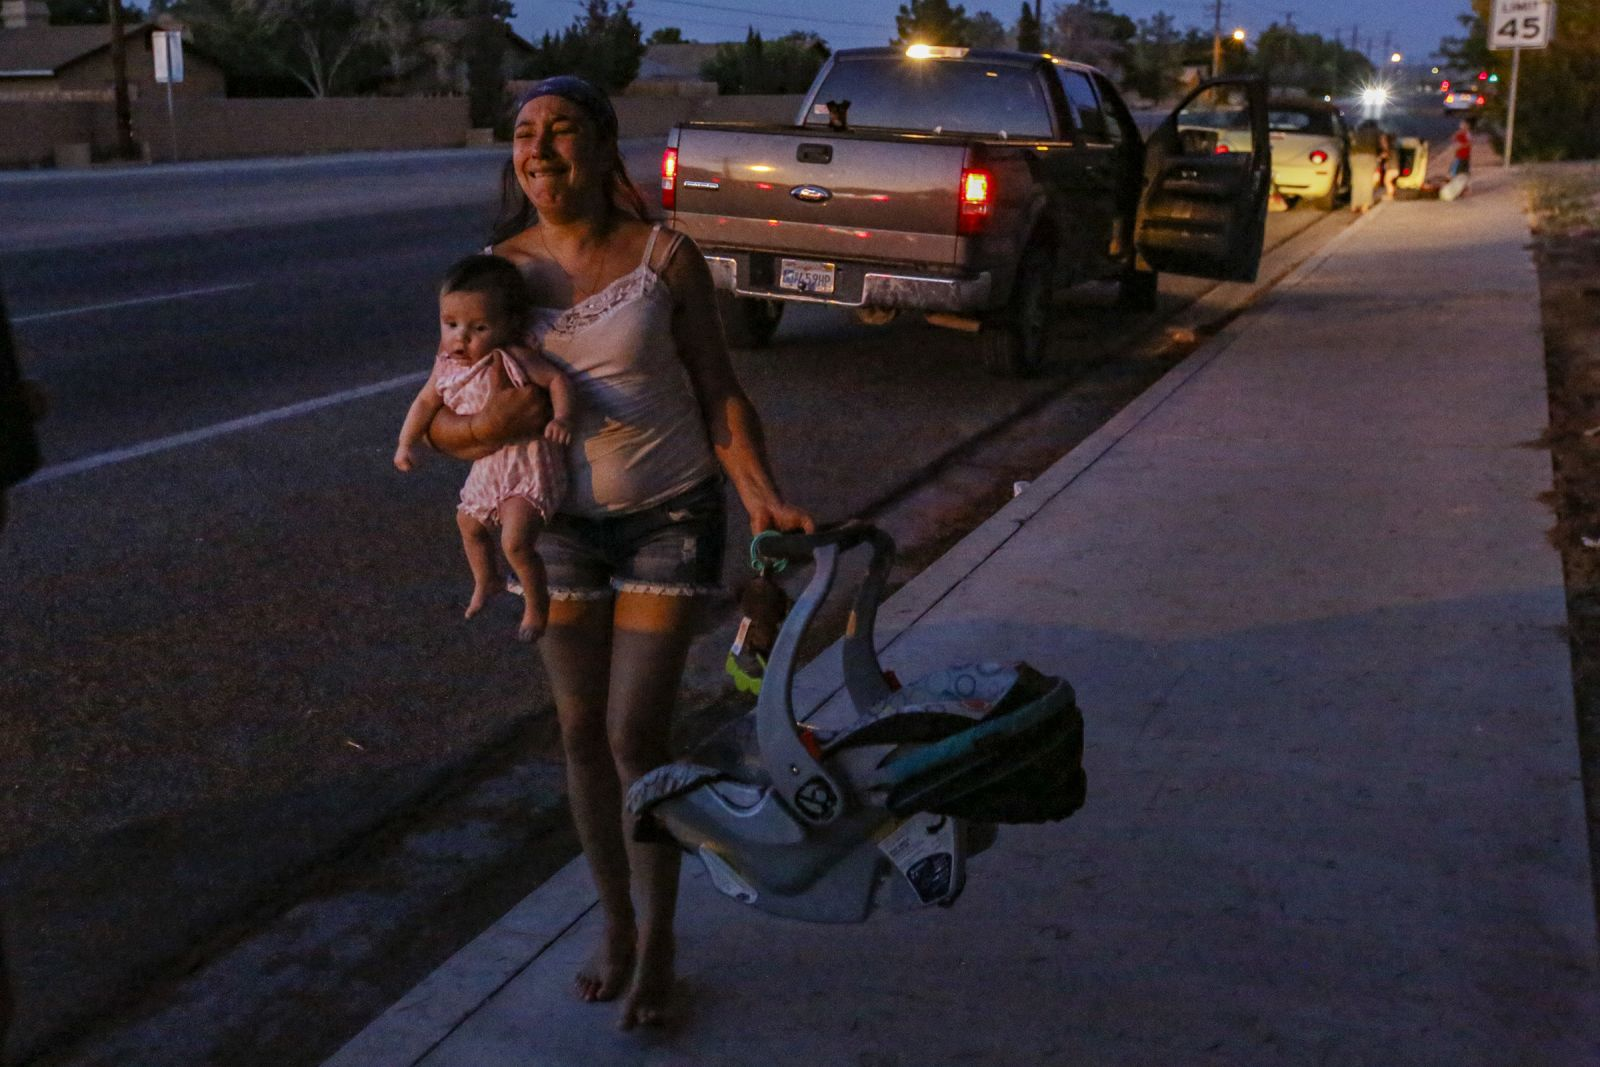 In pictures: Southern California hit by 7.1 magnitude earthquake